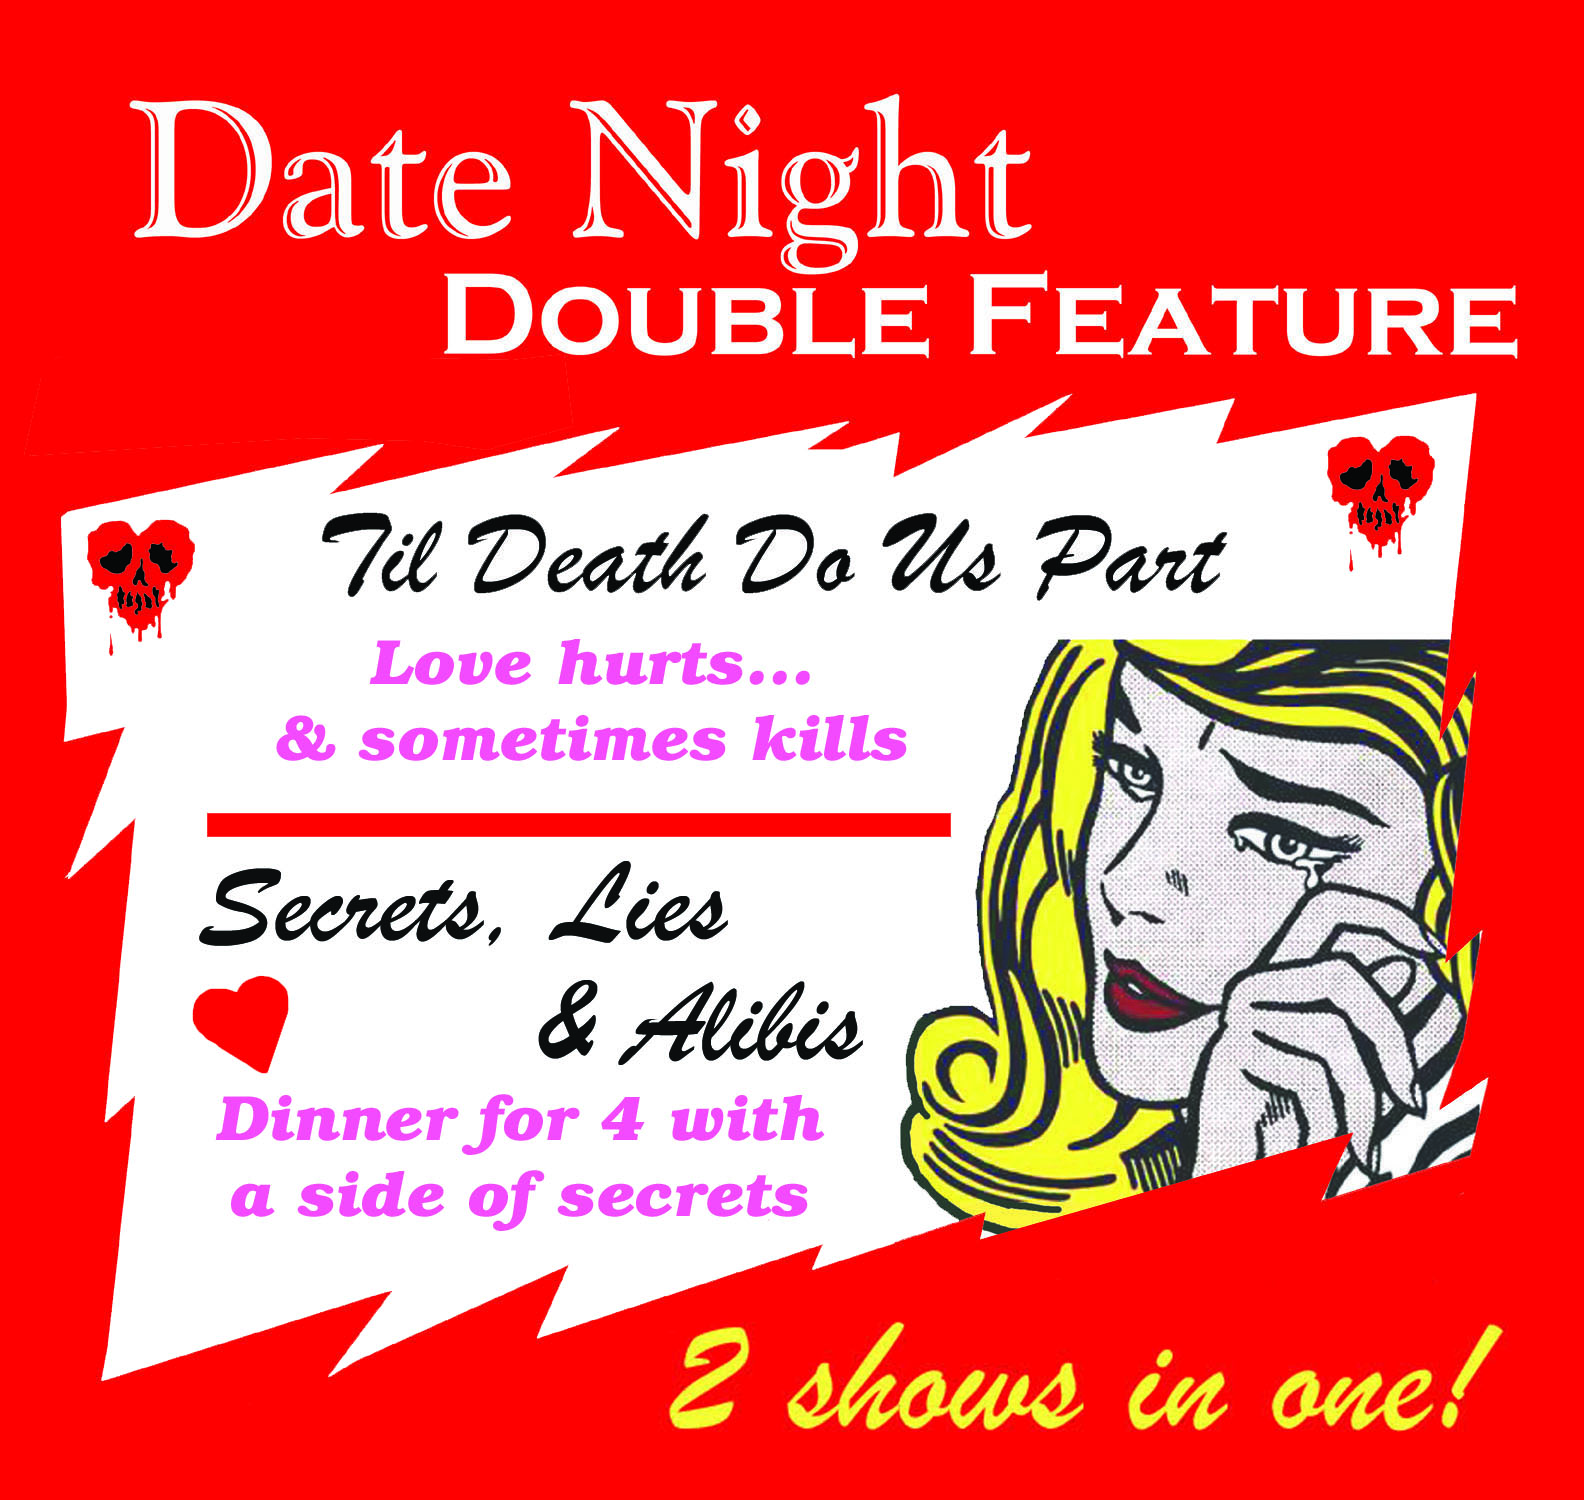 Date Night Double Feature